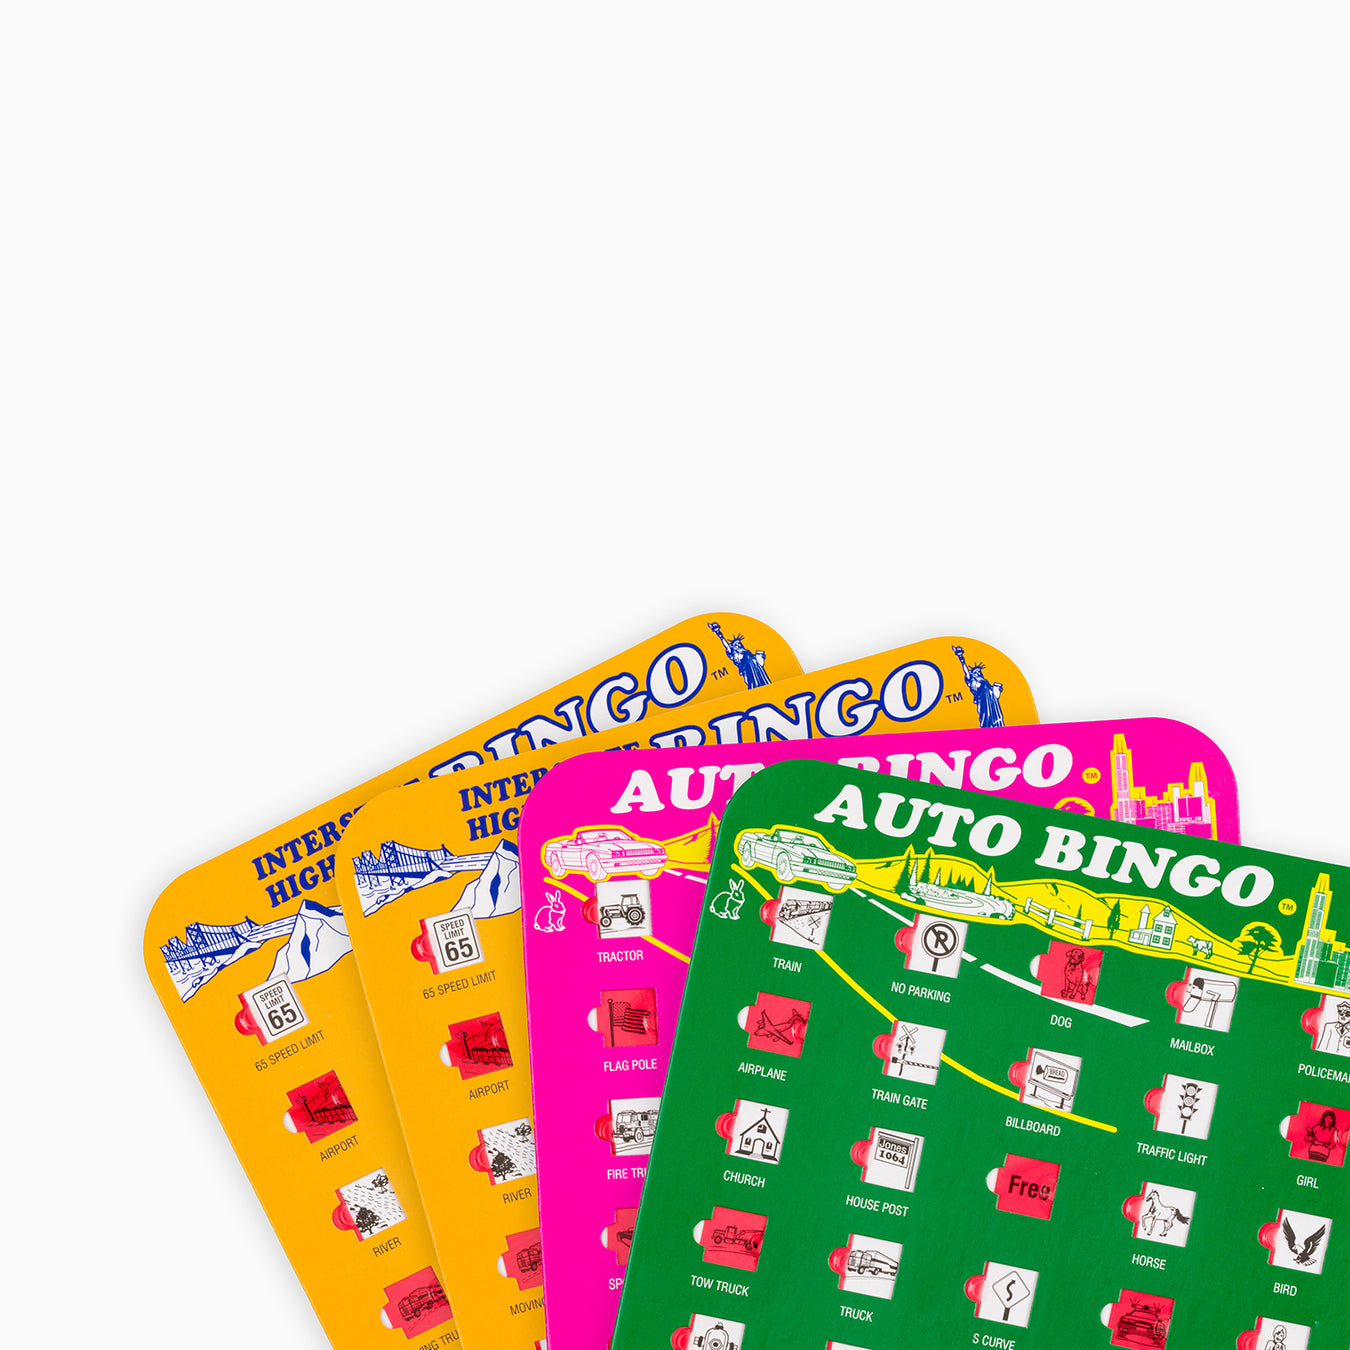 travel games, games for road trips, games for airplanes, auto bingo, bingo games, kids games for cars, bingo accessories, bingo cards for kids, bingo cards